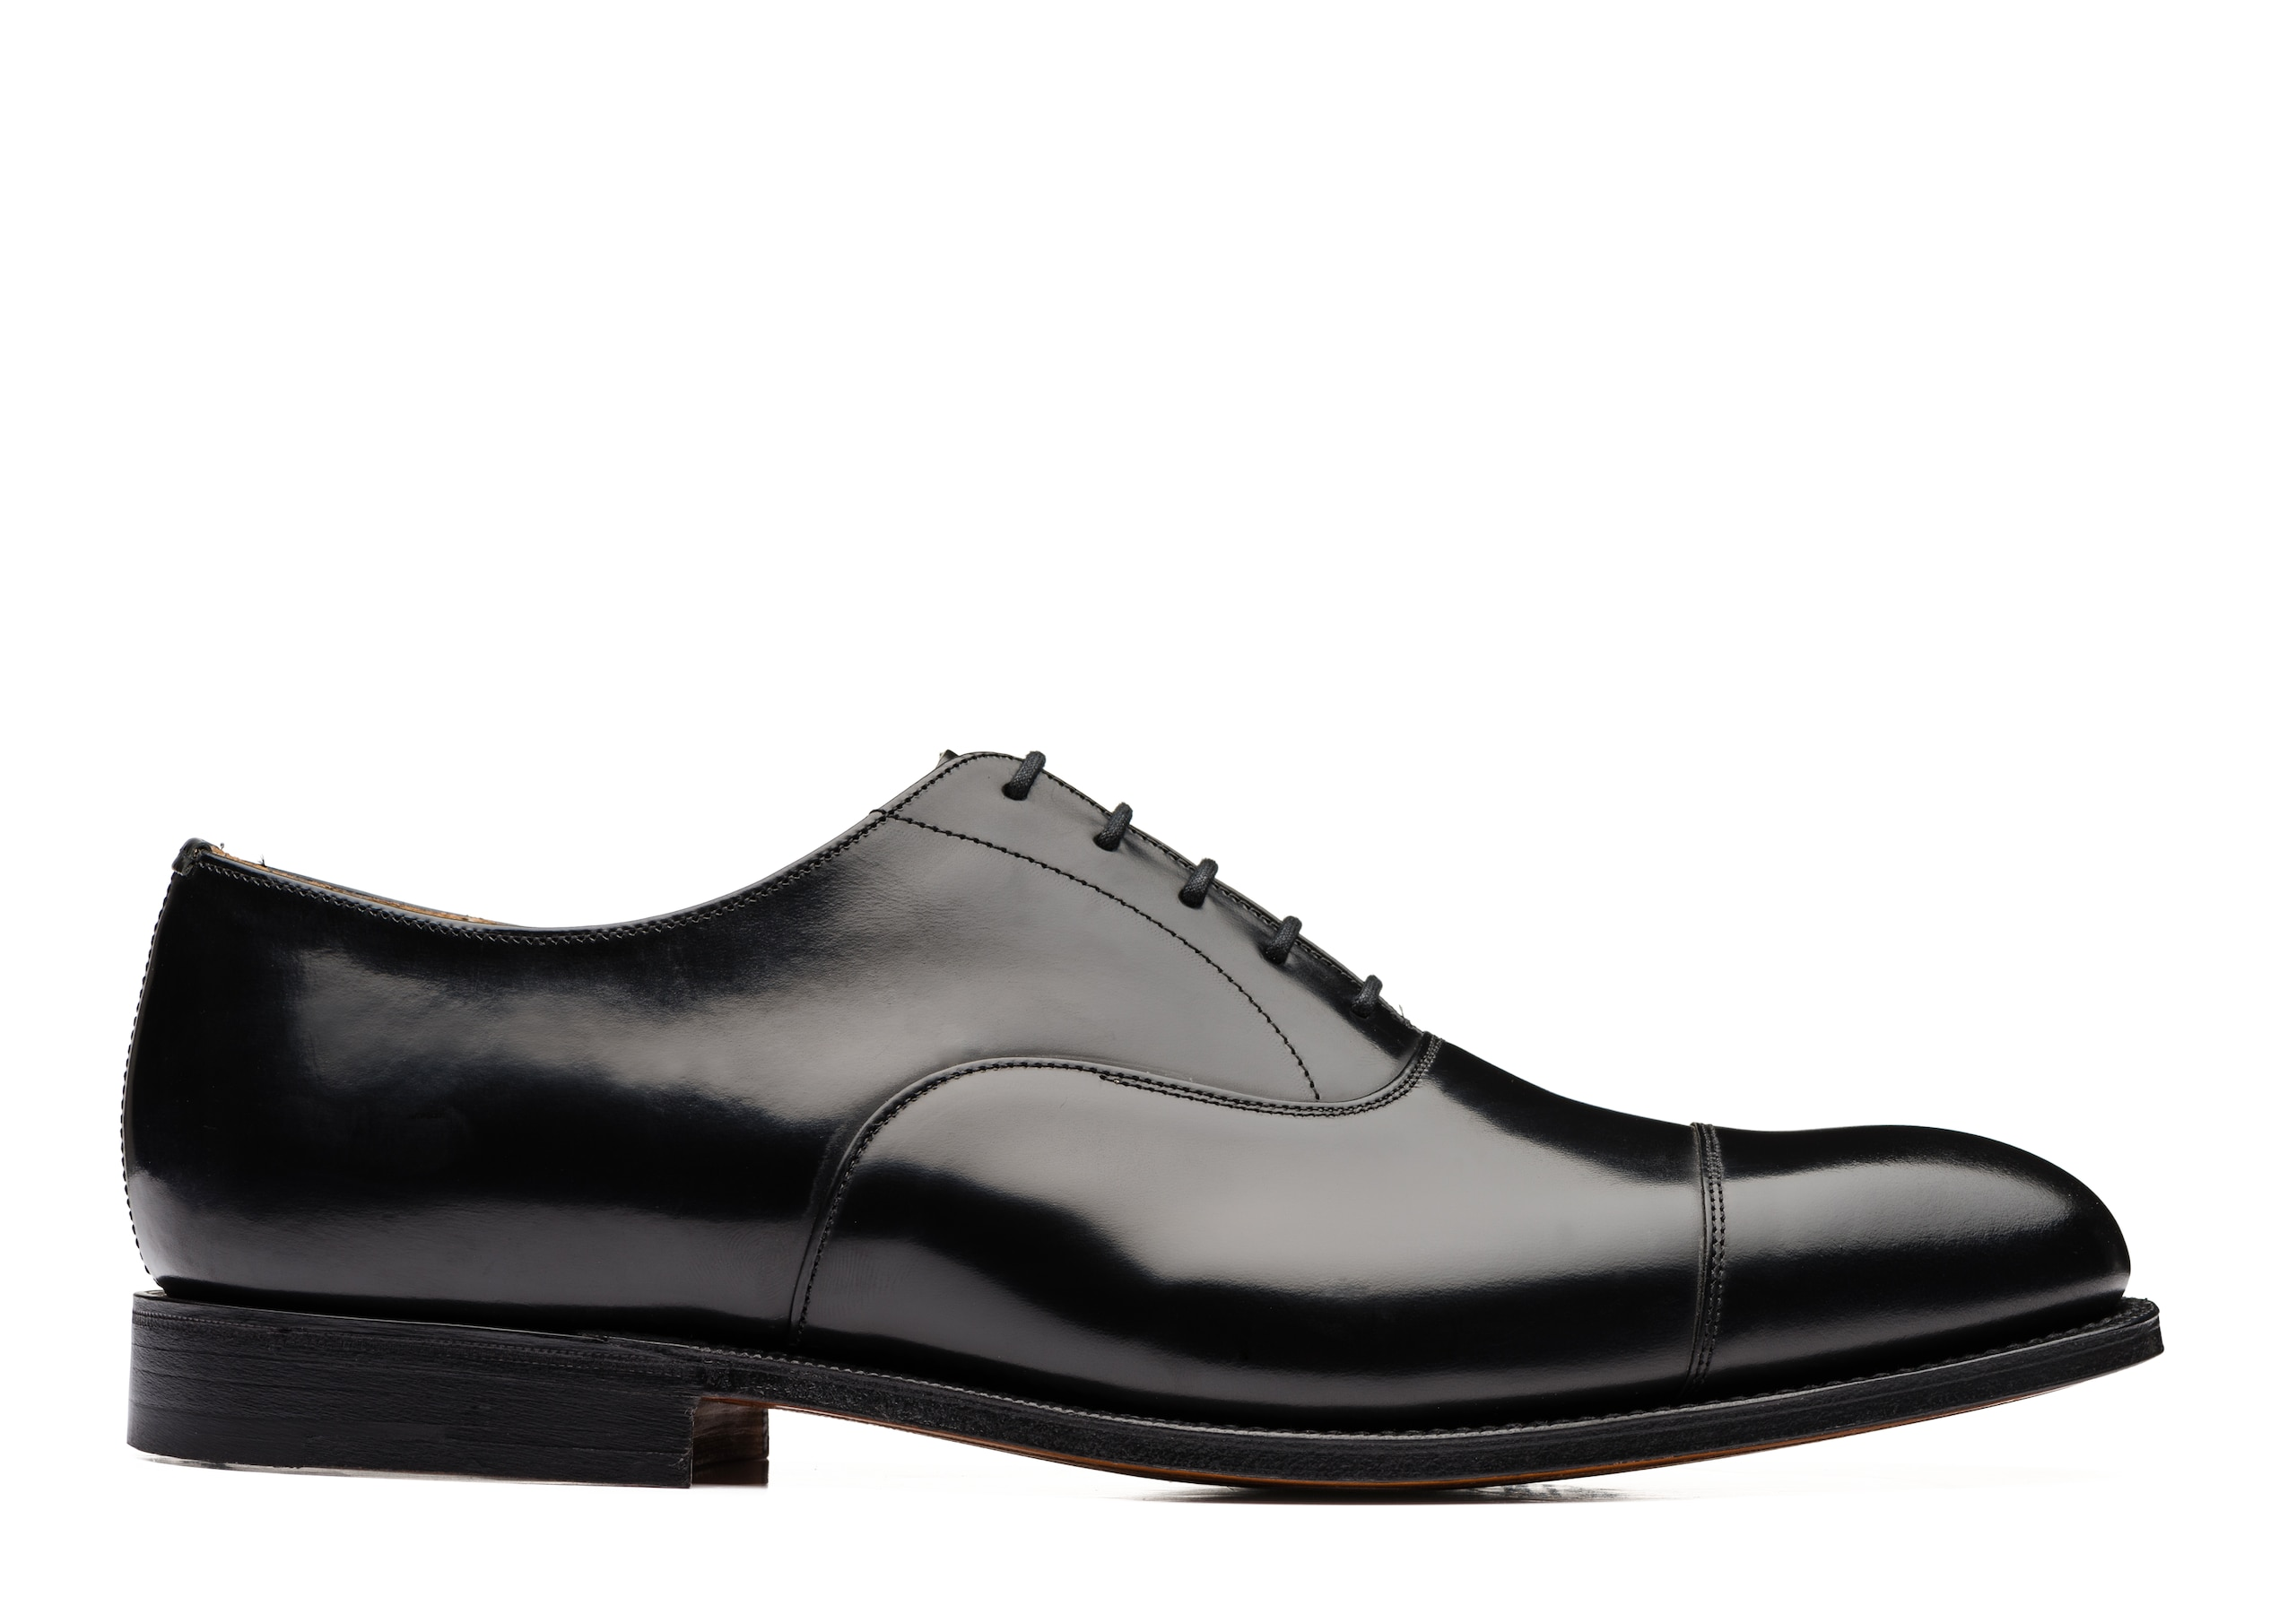 Consul 173 Church's Polished Binder Oxford Black